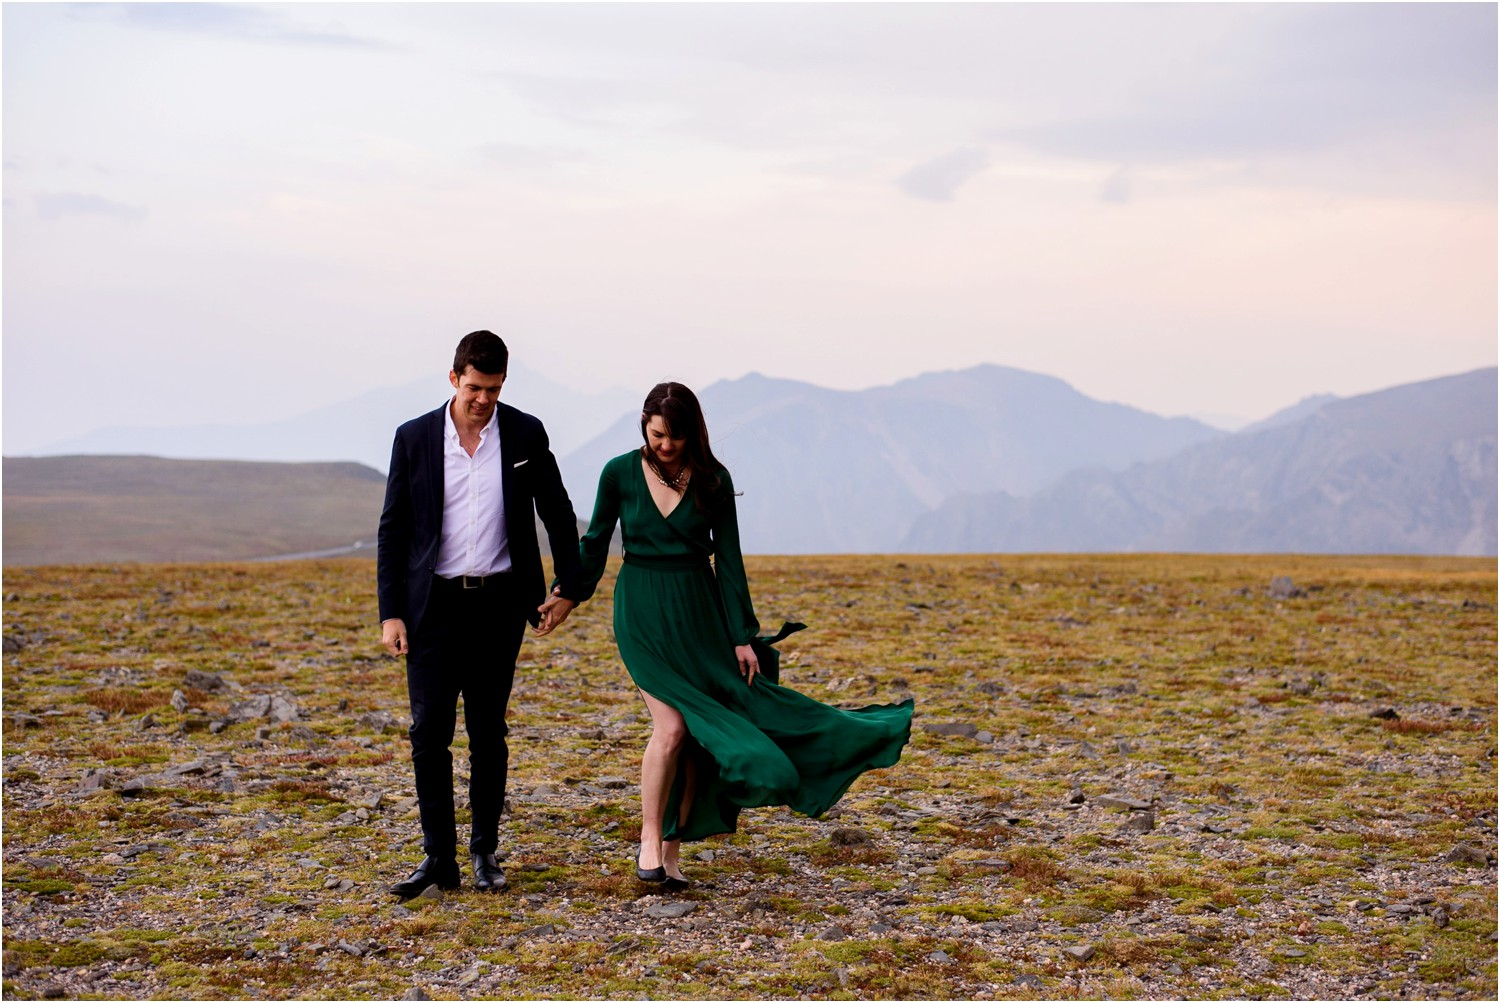 Rocky-mountain-national-Park-engagement-photography_0029.jpg